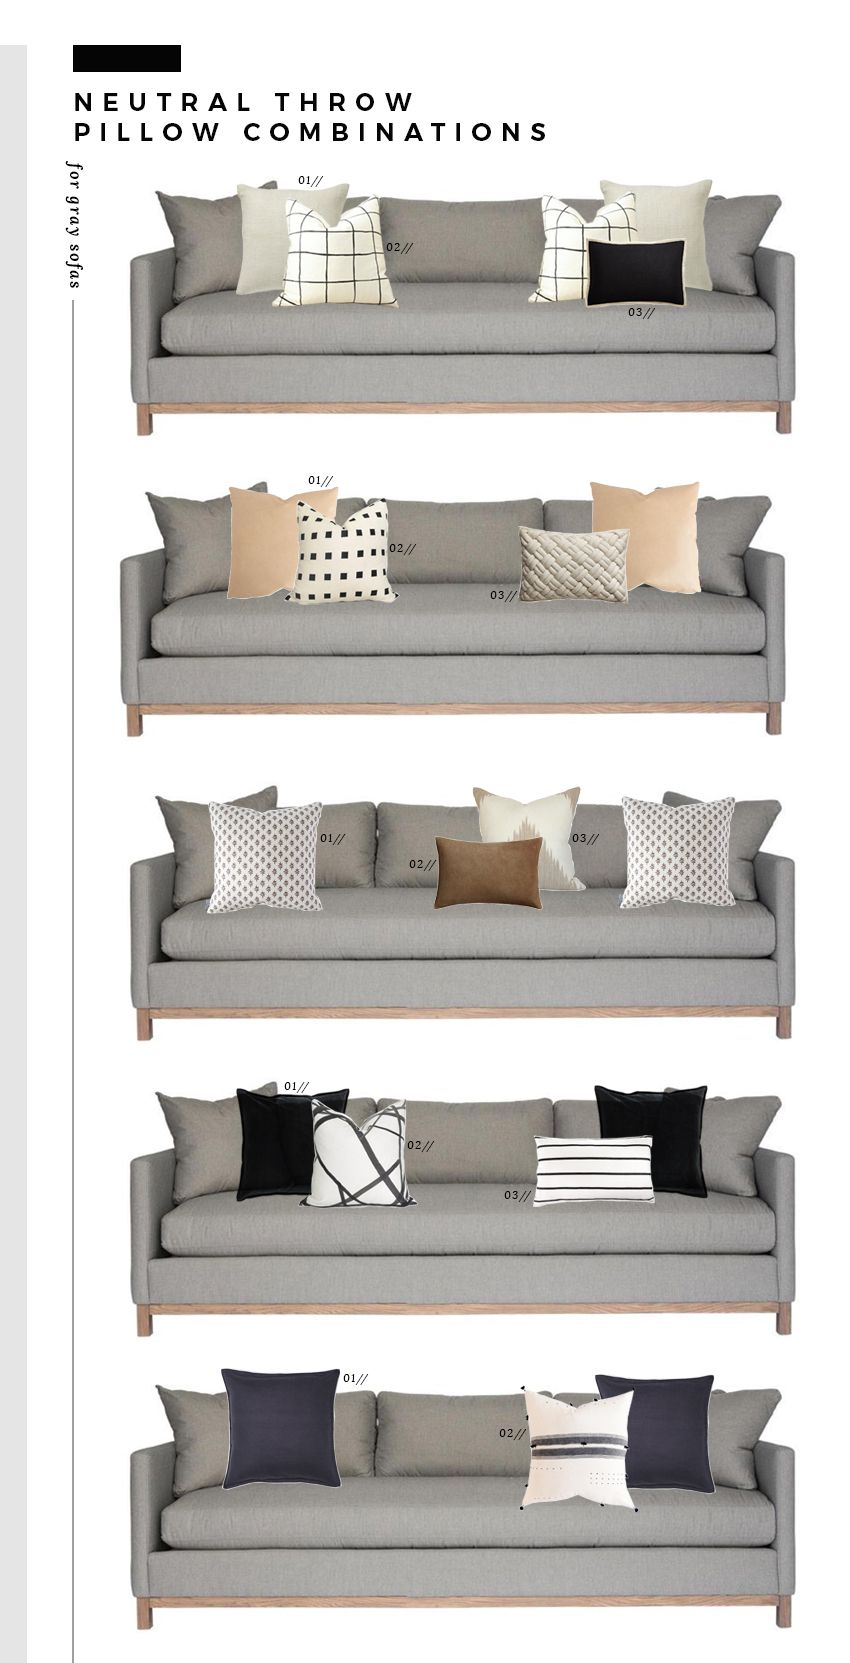 Neutral Throw Pillow Combinations For White And Gray Sofas Room For Tuesday Grey Sofa Living Room Home Living Room Living Room Decor Apartment Throw pillows for grey couch